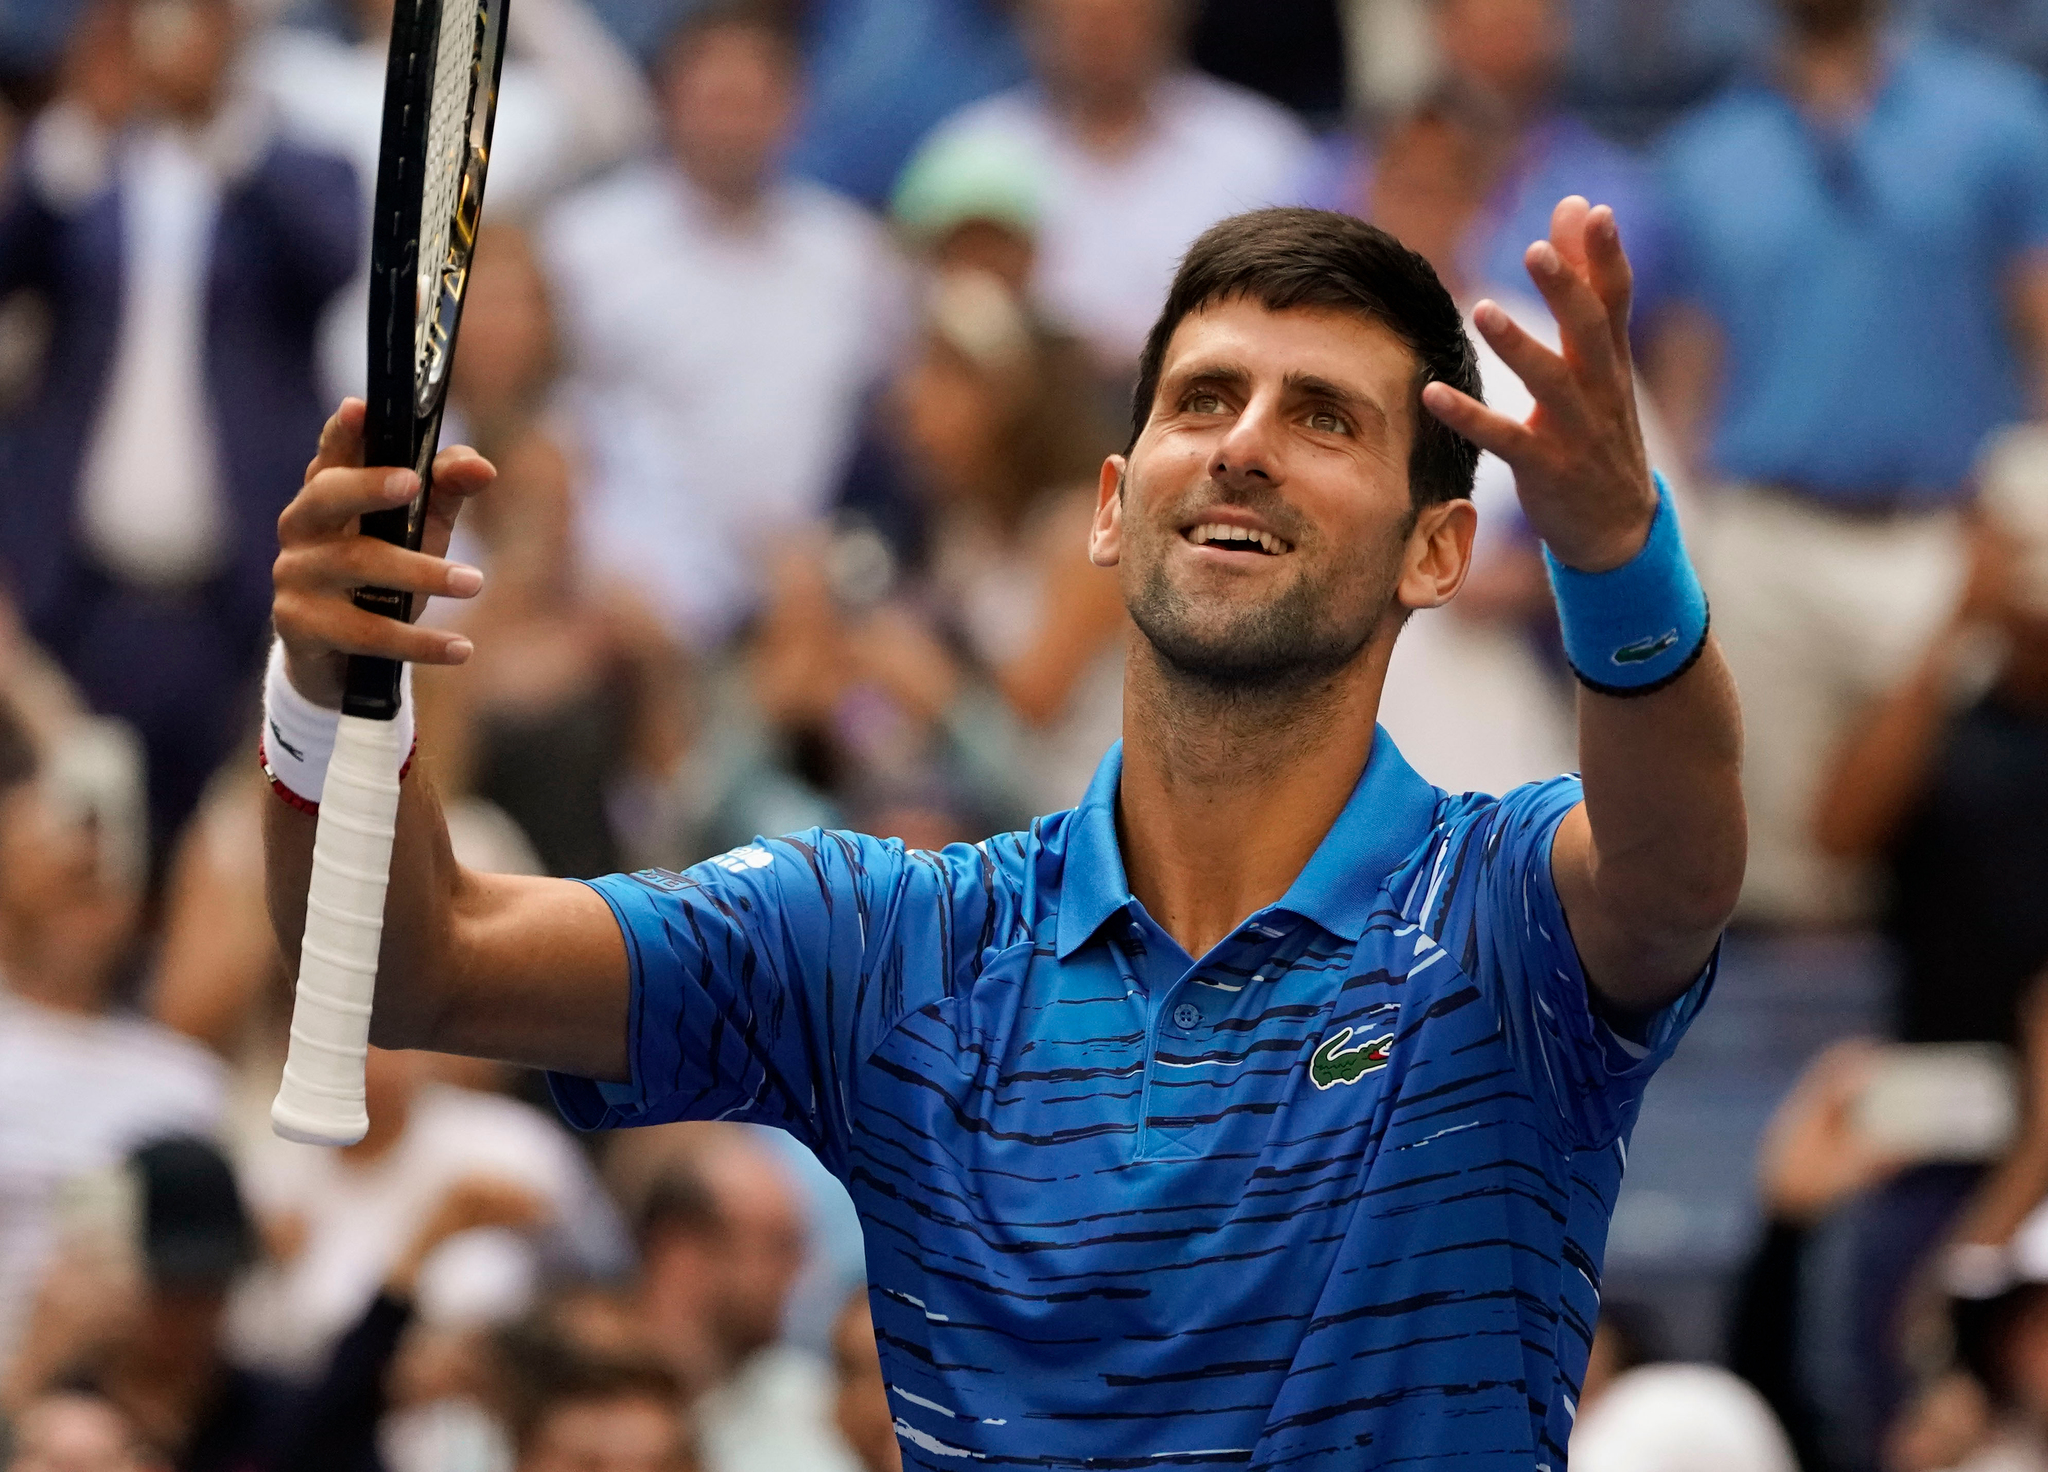 Aug 26, 2019; Flushing, NY, USA; Novak <HIT>Djokovic</HIT> of Serbia reacts after defeating Roberto Carballes Baena of Spain in the first round on day one of the 2019 U.S. Open tennis tournament at USTA Billie Jean King National Tennis Center. Mandatory Credit: Robert Deutsch-USA TODAY Sports